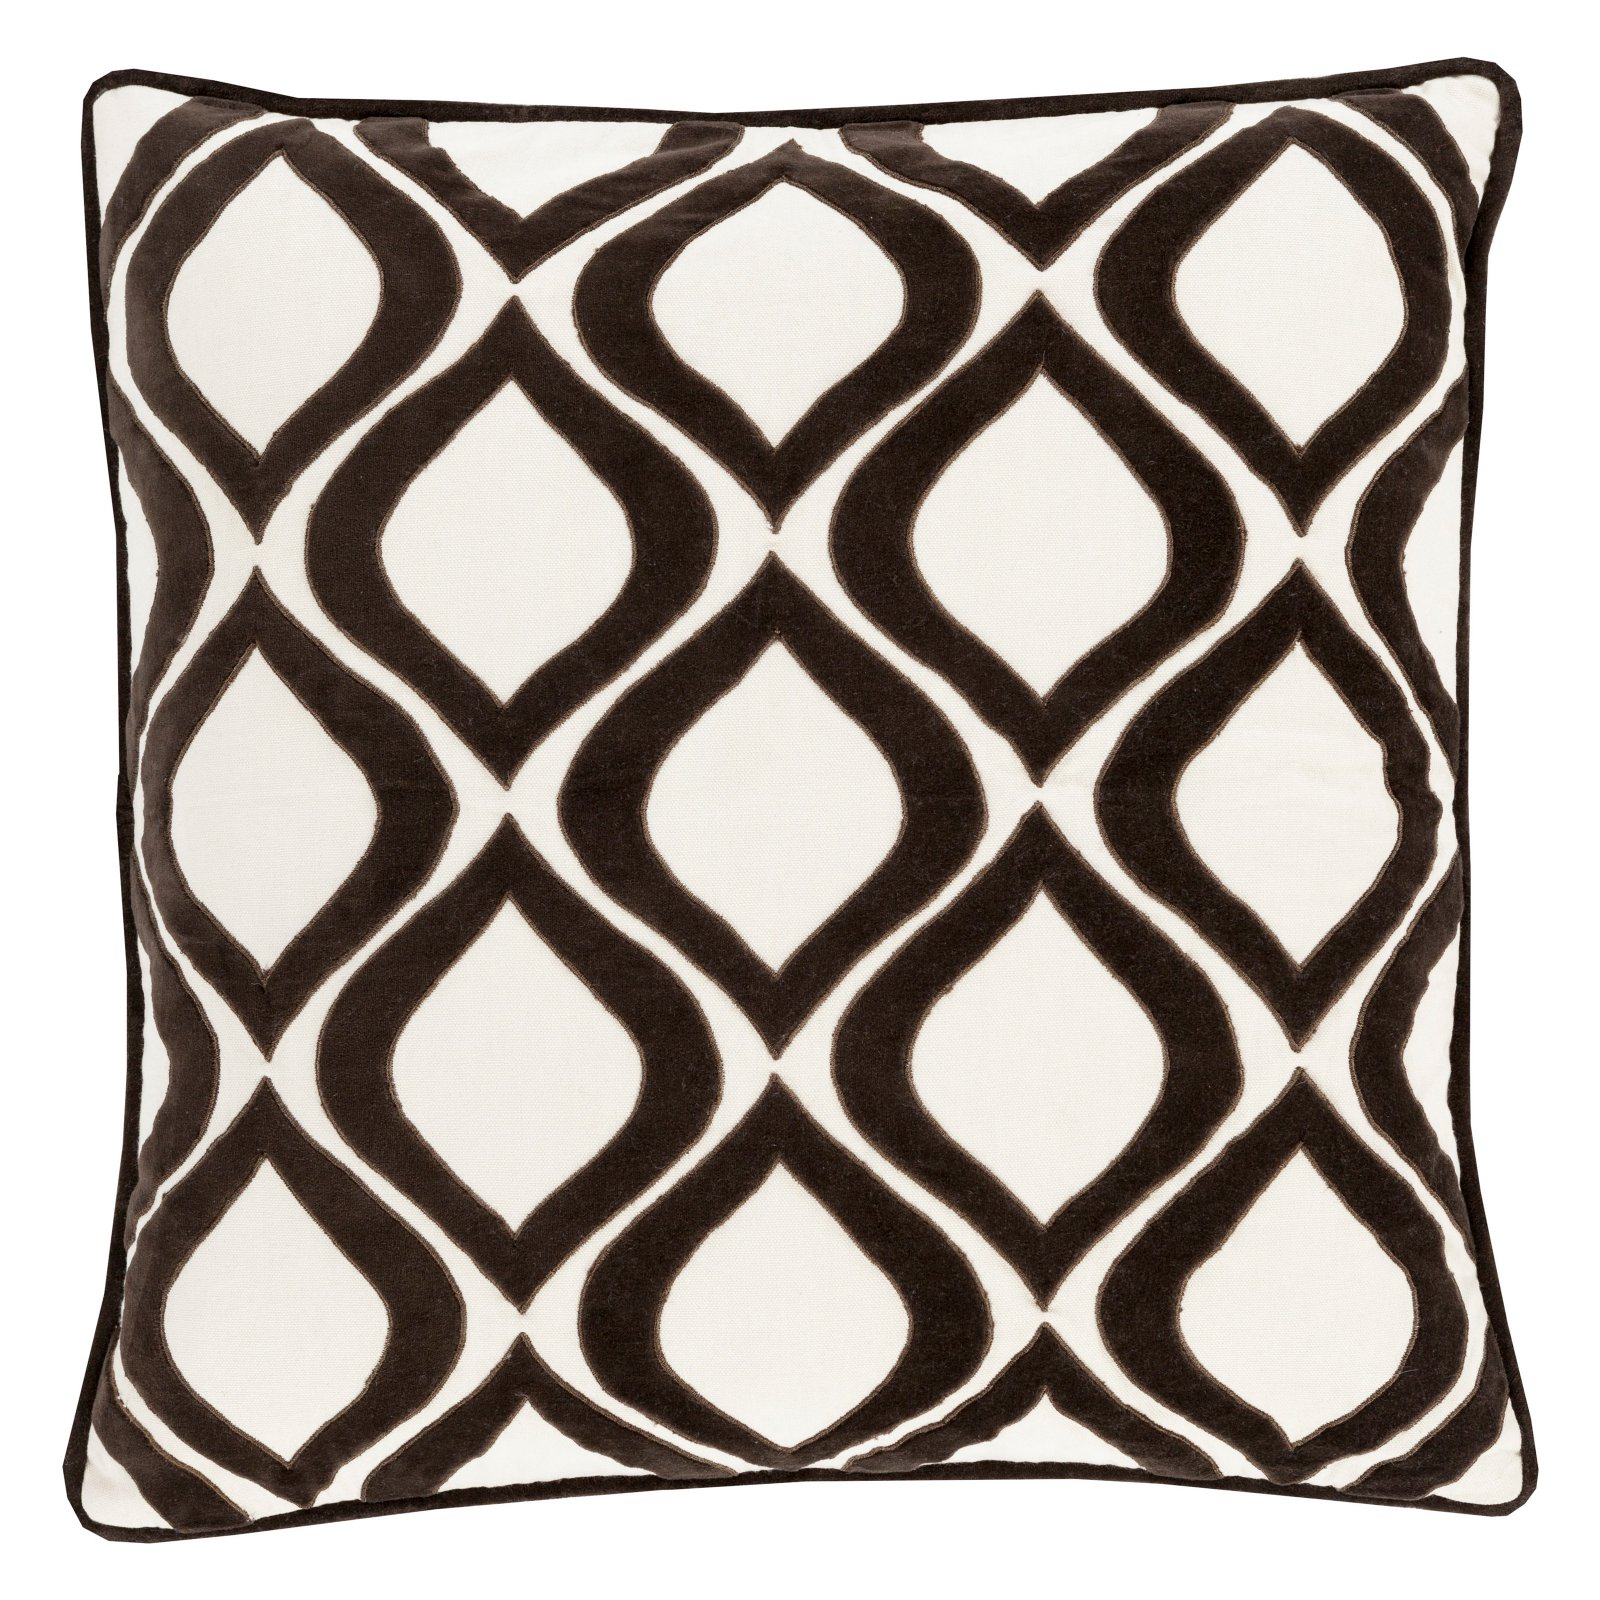 Surya Diamond and Cross Velvet Decorative Throw Pillow